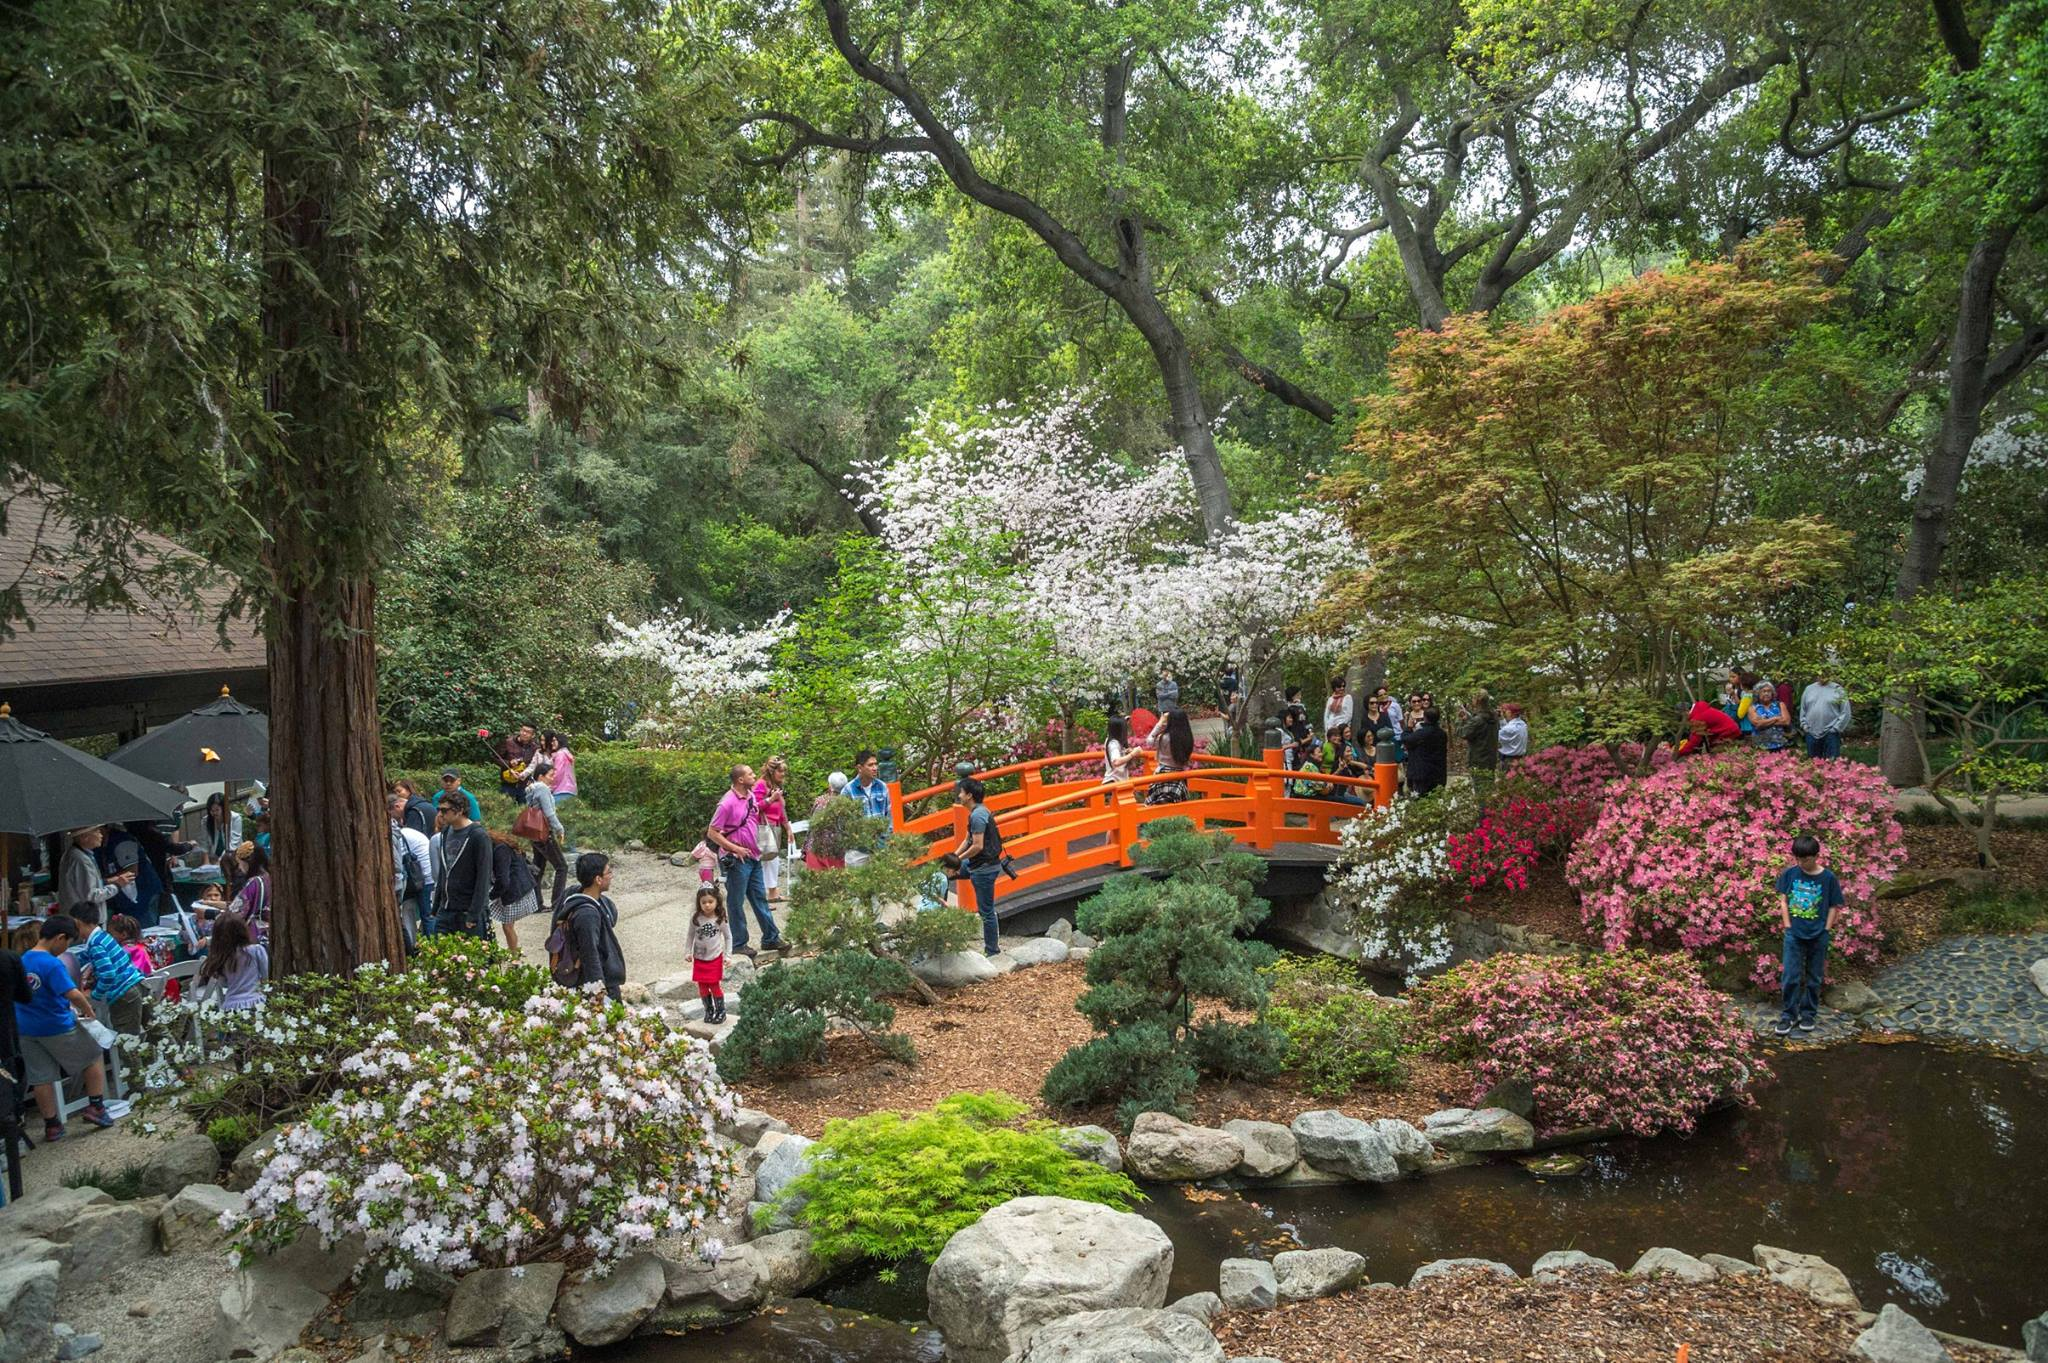 Descanso gardens is the best place to see cherry blossoms in southern california this spring for Gardens in southern california